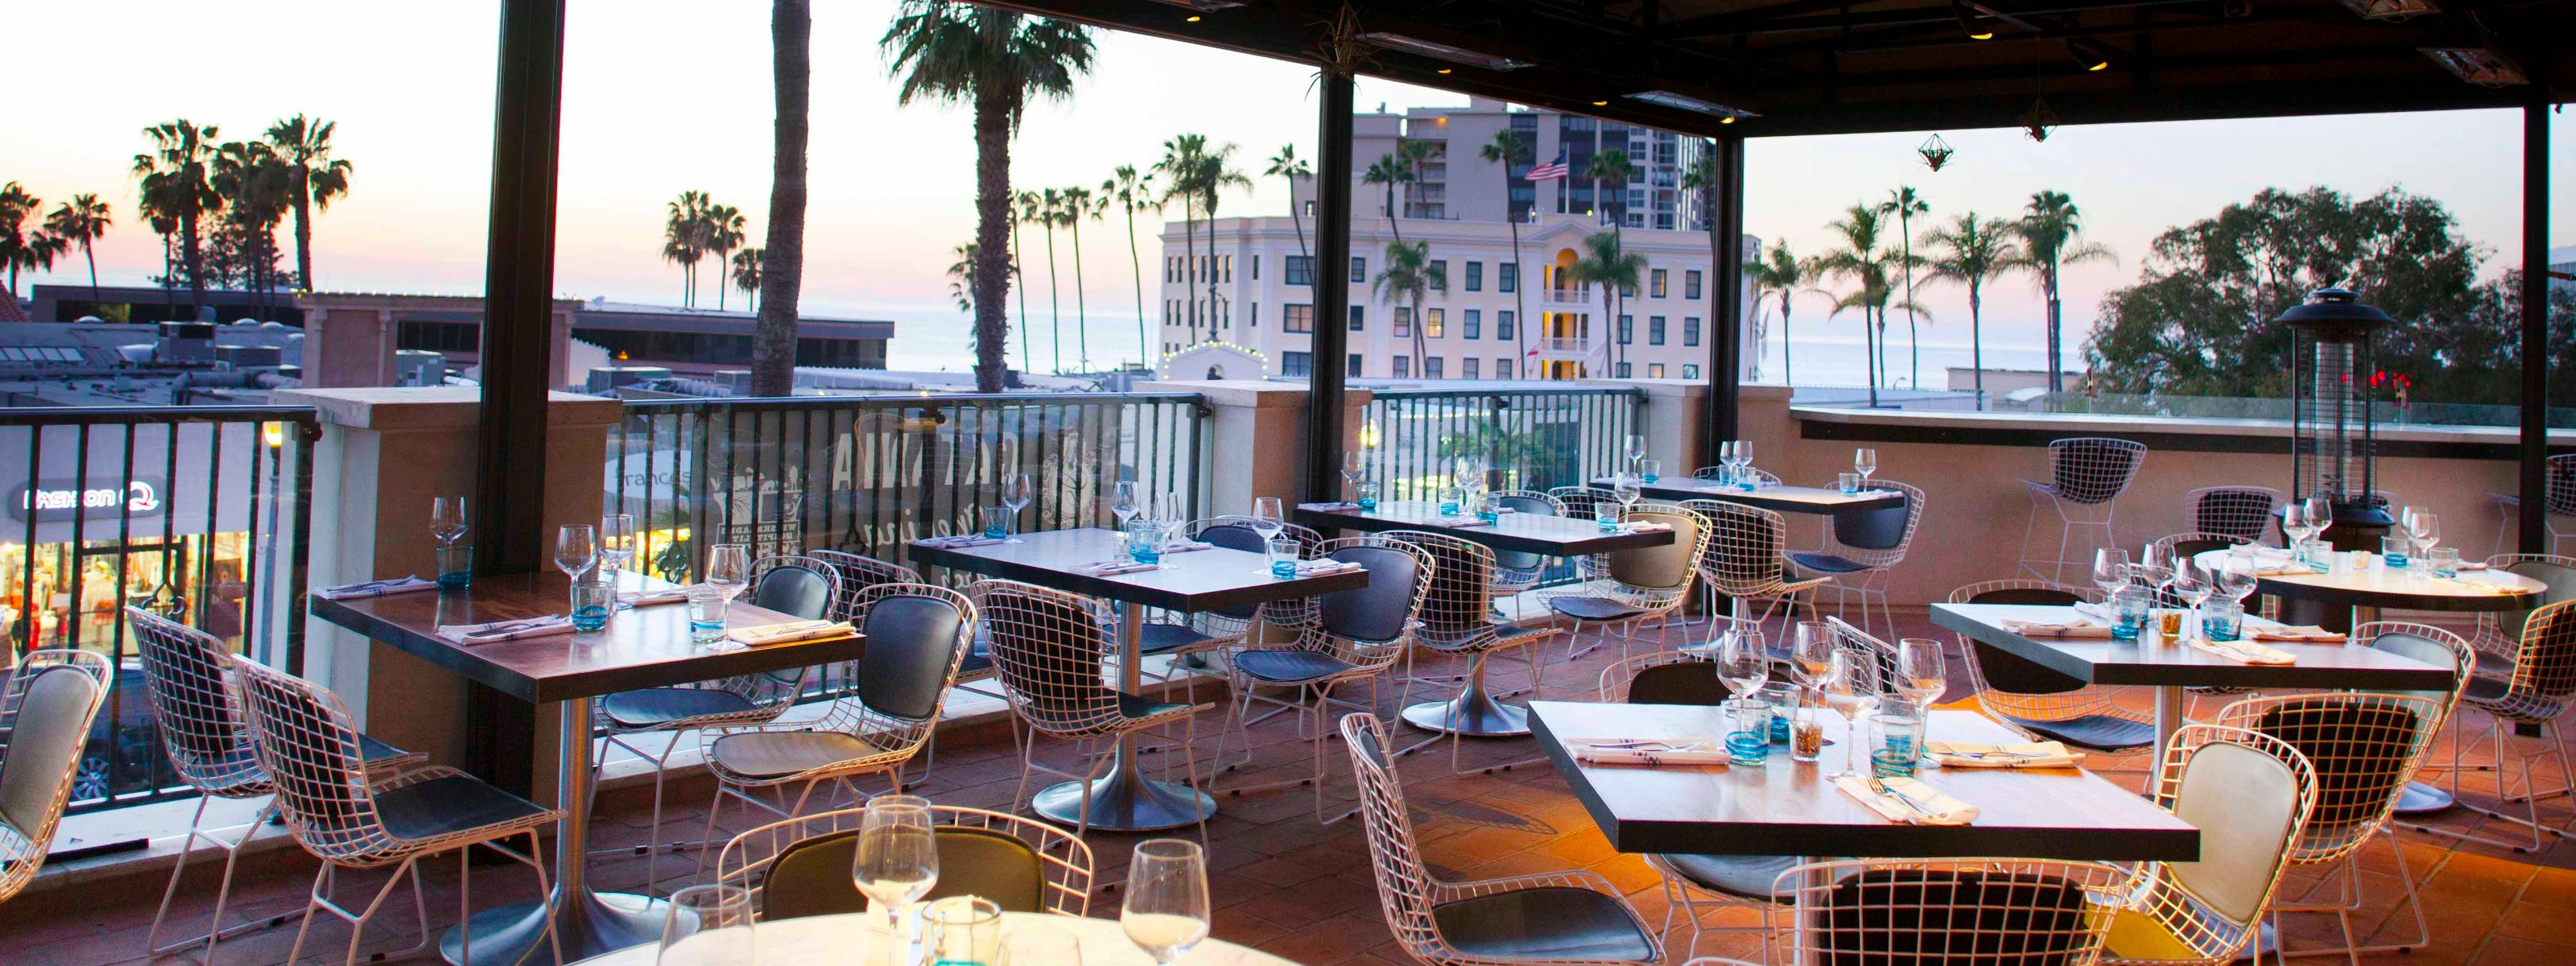 A Guide To The Best San Diego Restaurants For Celebrations - Los Angeles